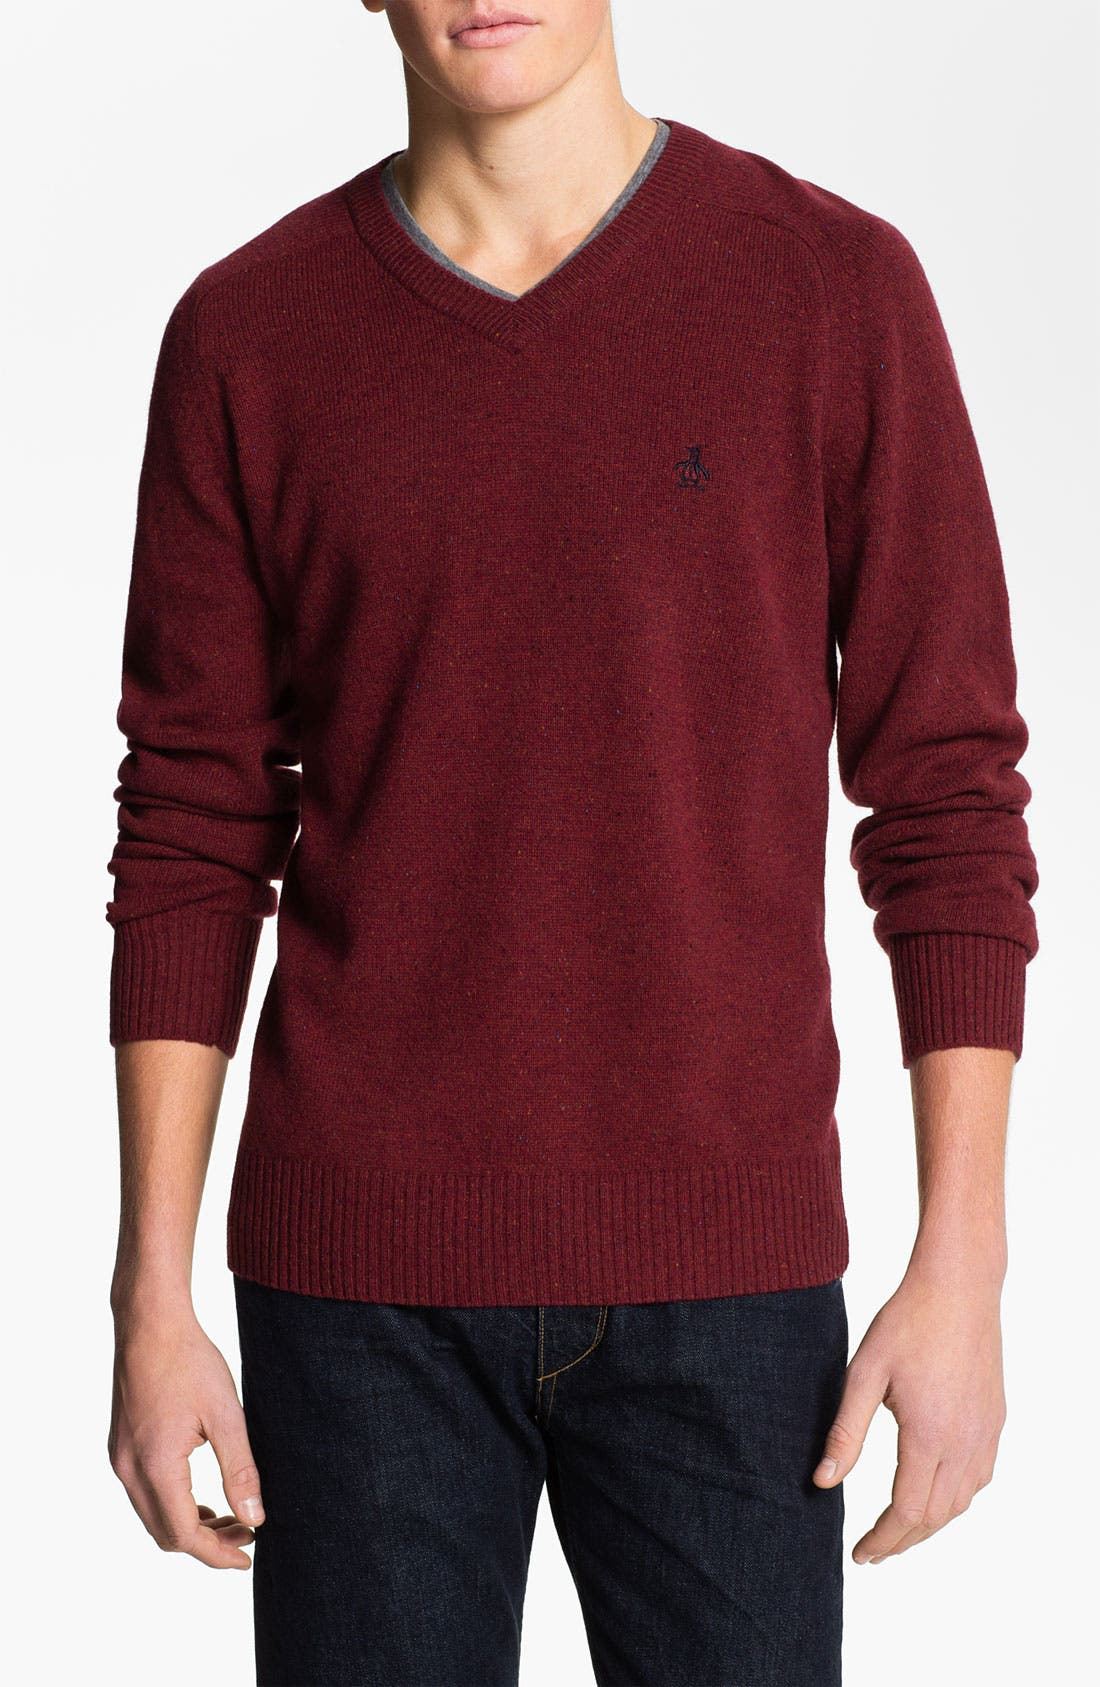 Main Image - Original Penguin Speckled Knit V-Neck Sweater